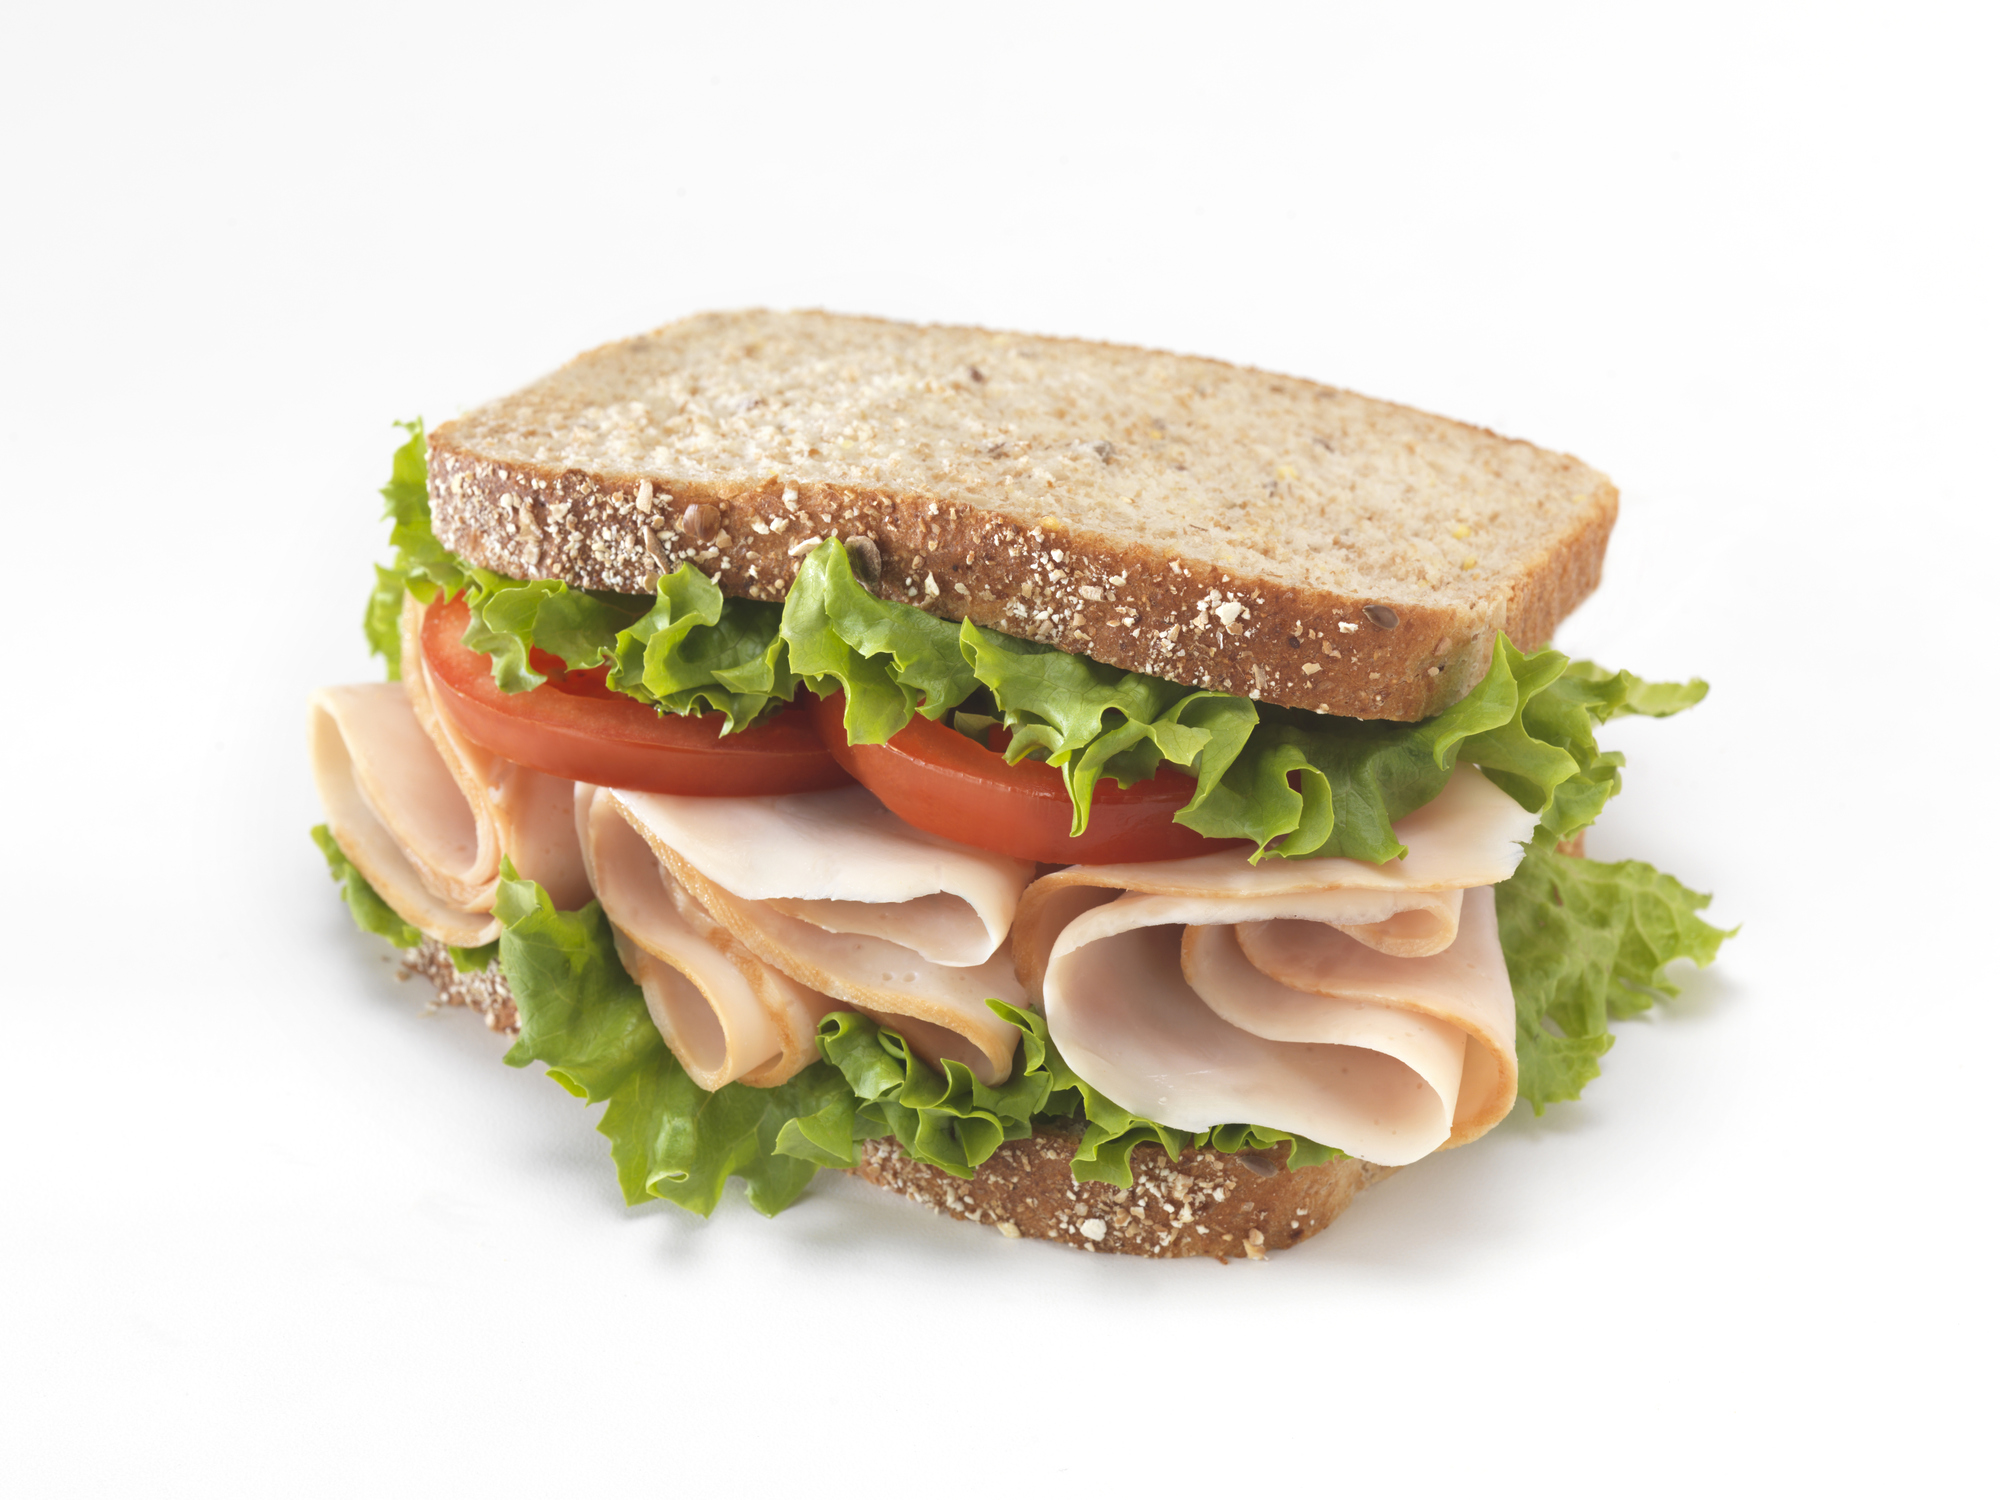 SANDWICHED: Balancing the Needs of Multiple Generations